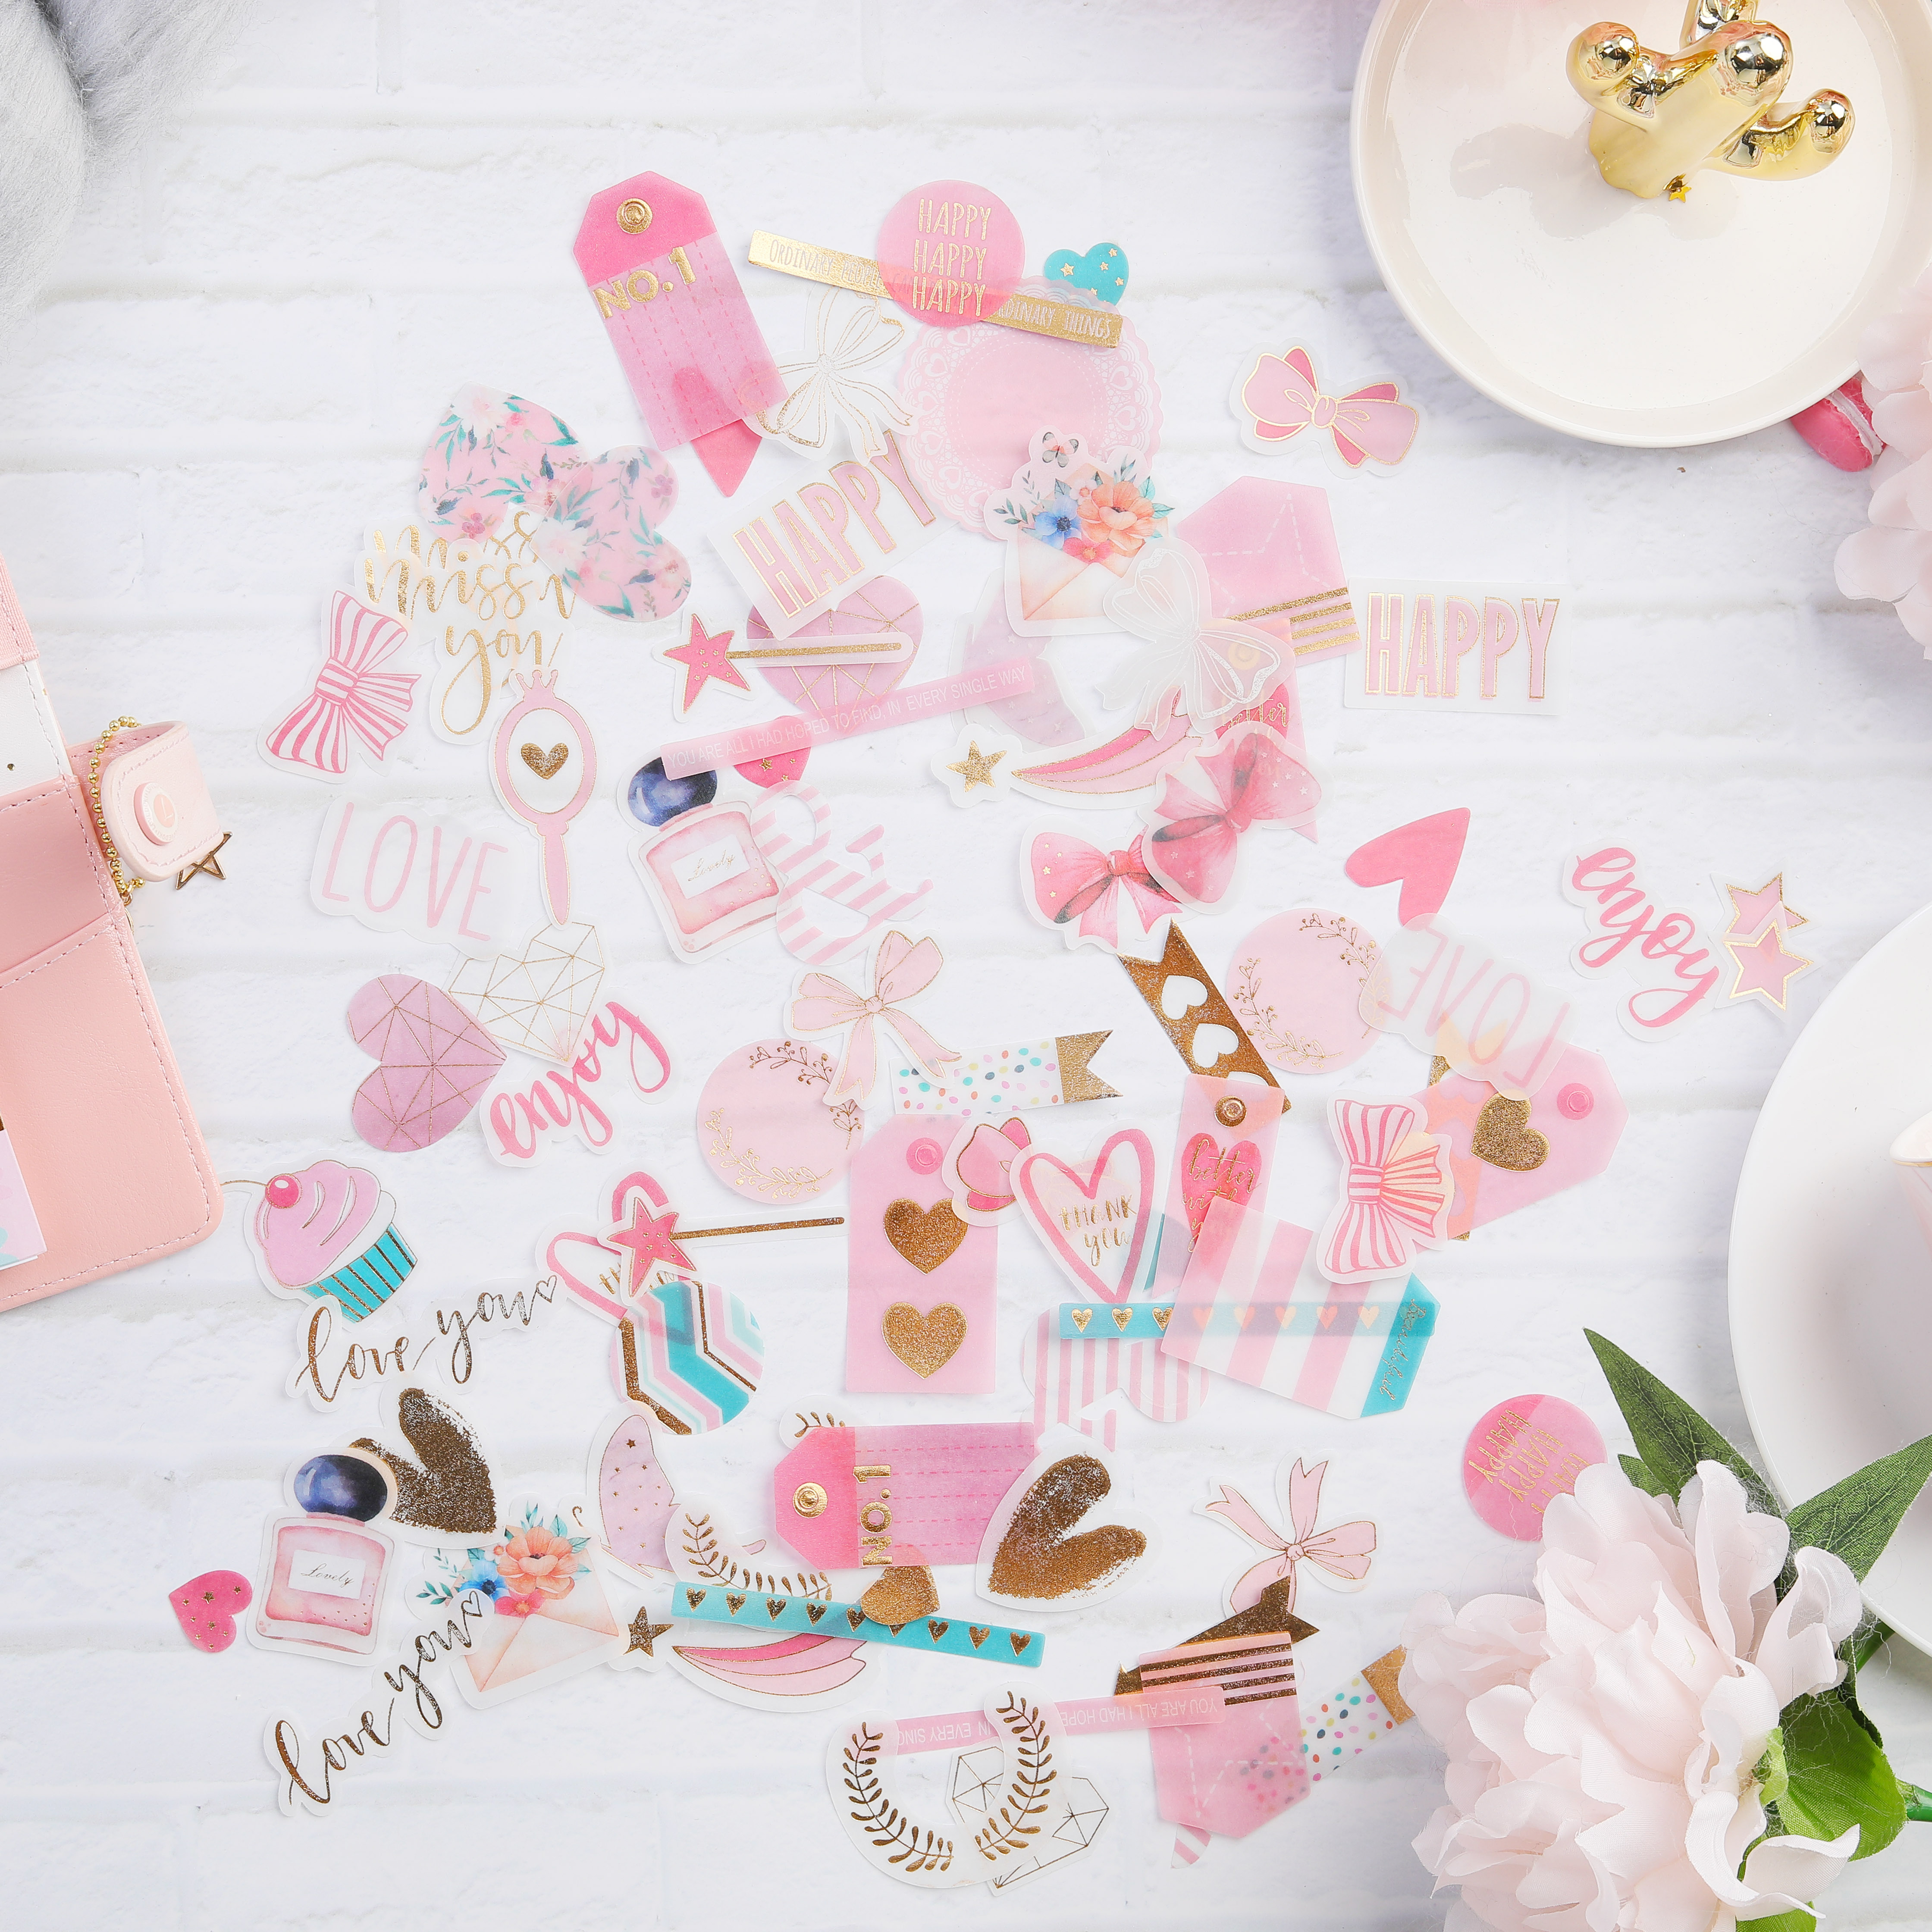 90pc/pack Bronzing Kawaii things lovely bow Perfume bottle Decorative Translucent Stickers DIY Scrapbooking Label Diary Stickers90pc/pack Bronzing Kawaii things lovely bow Perfume bottle Decorative Translucent Stickers DIY Scrapbooking Label Diary Stickers